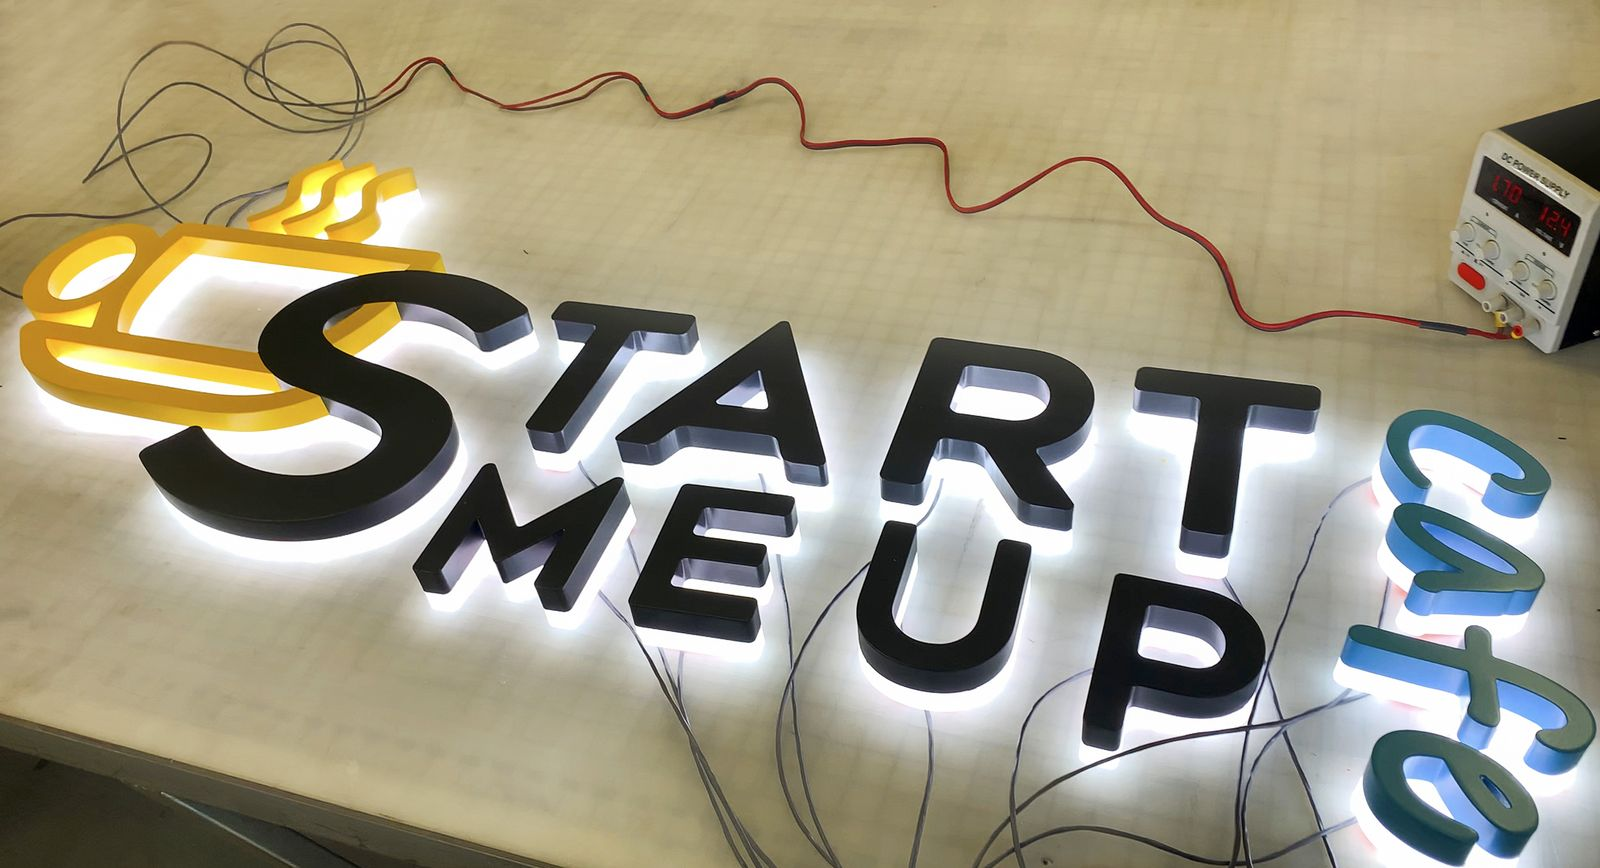 Start Me Up Cafe backlit 3d sign displaying the company name and logo made of acrylic